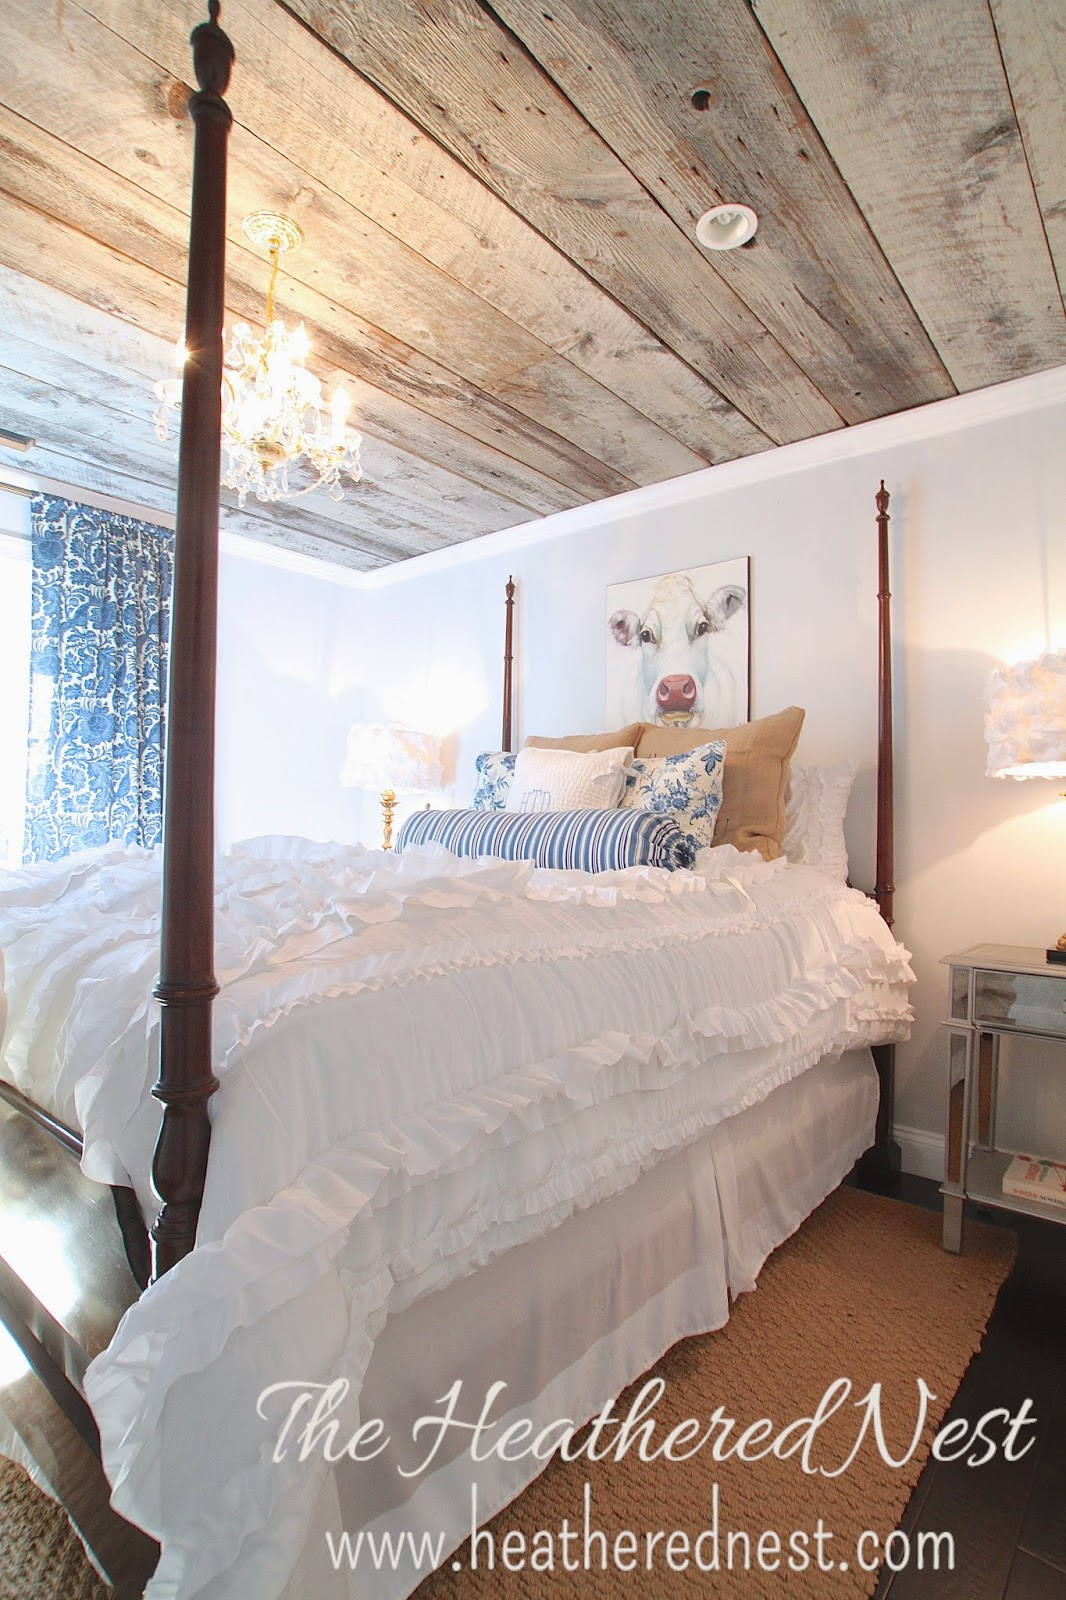 cow art, heathered nest cow, heathered nest guest room, heathered nest barnboard ceiling